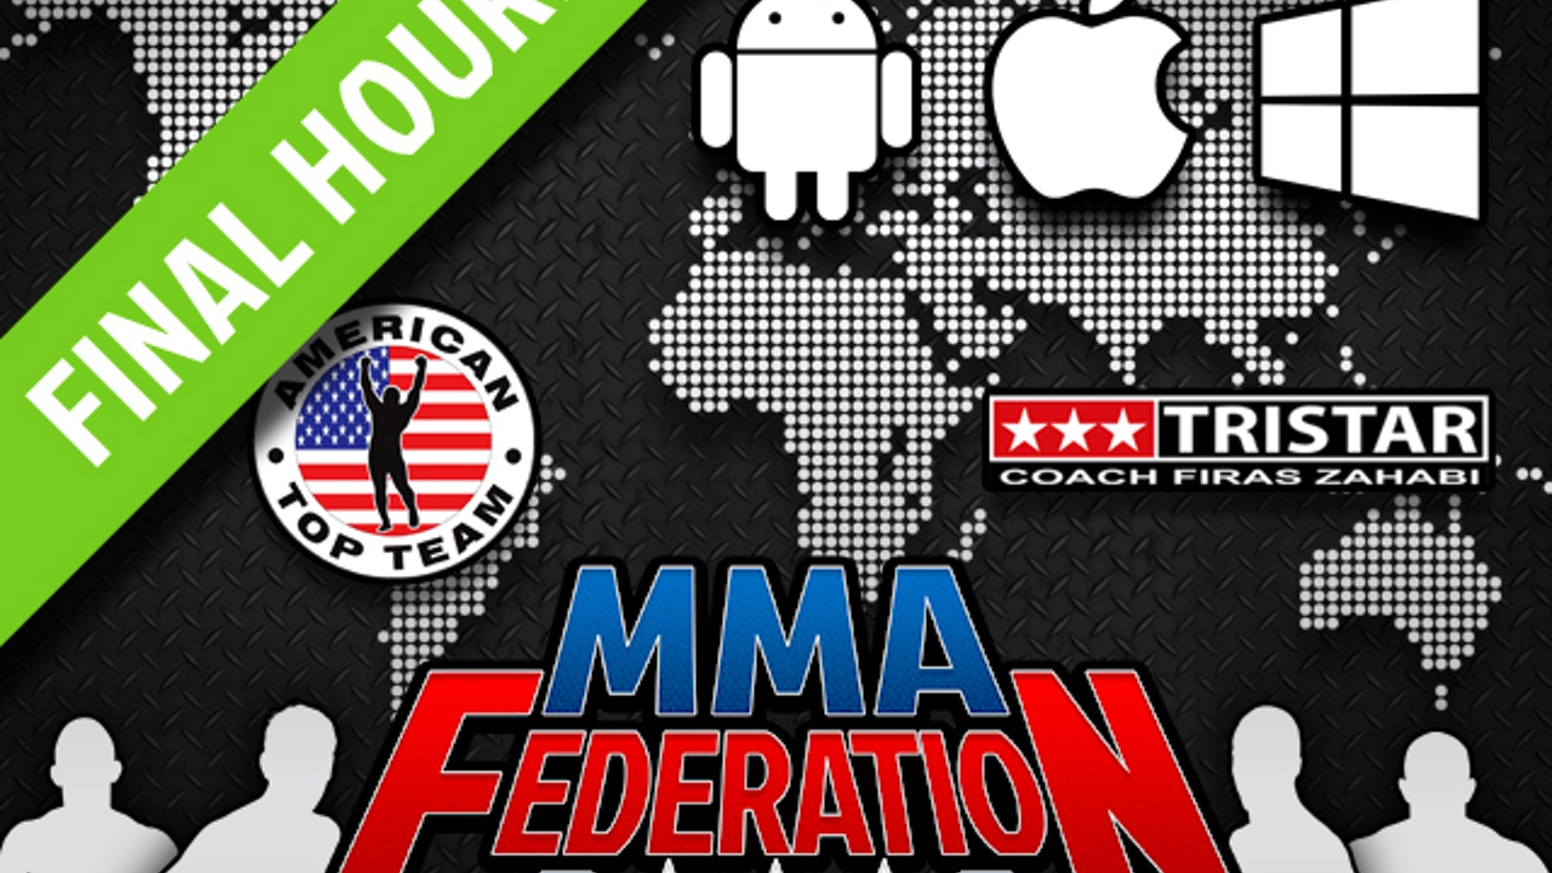 The all-new social game based in the world of MMA, introducing Real Achievements, Real Teams and Real Fighters!